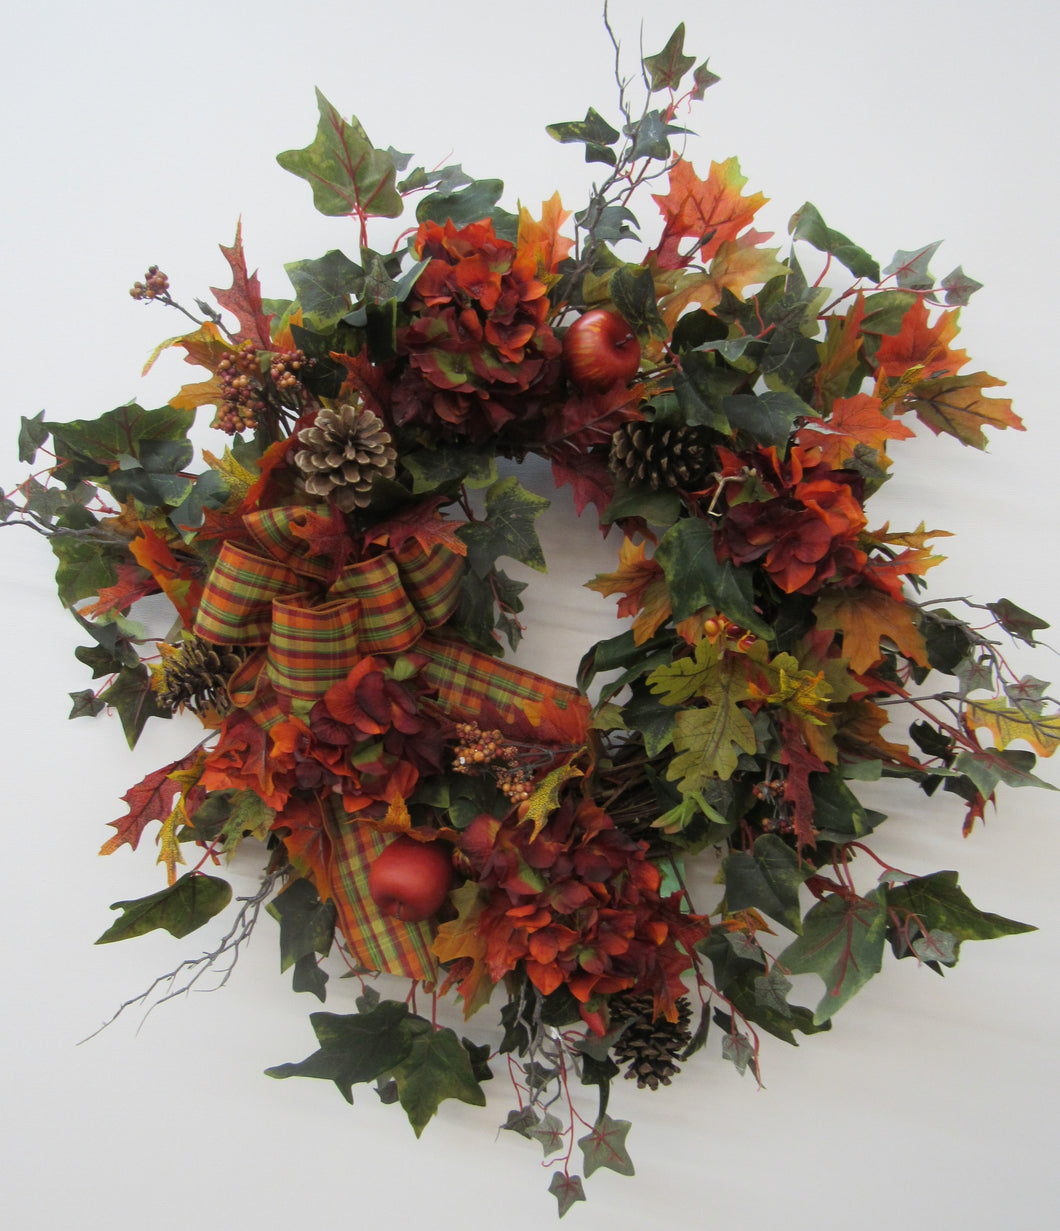 Gallery/Harv76 - April's Garden Wreath